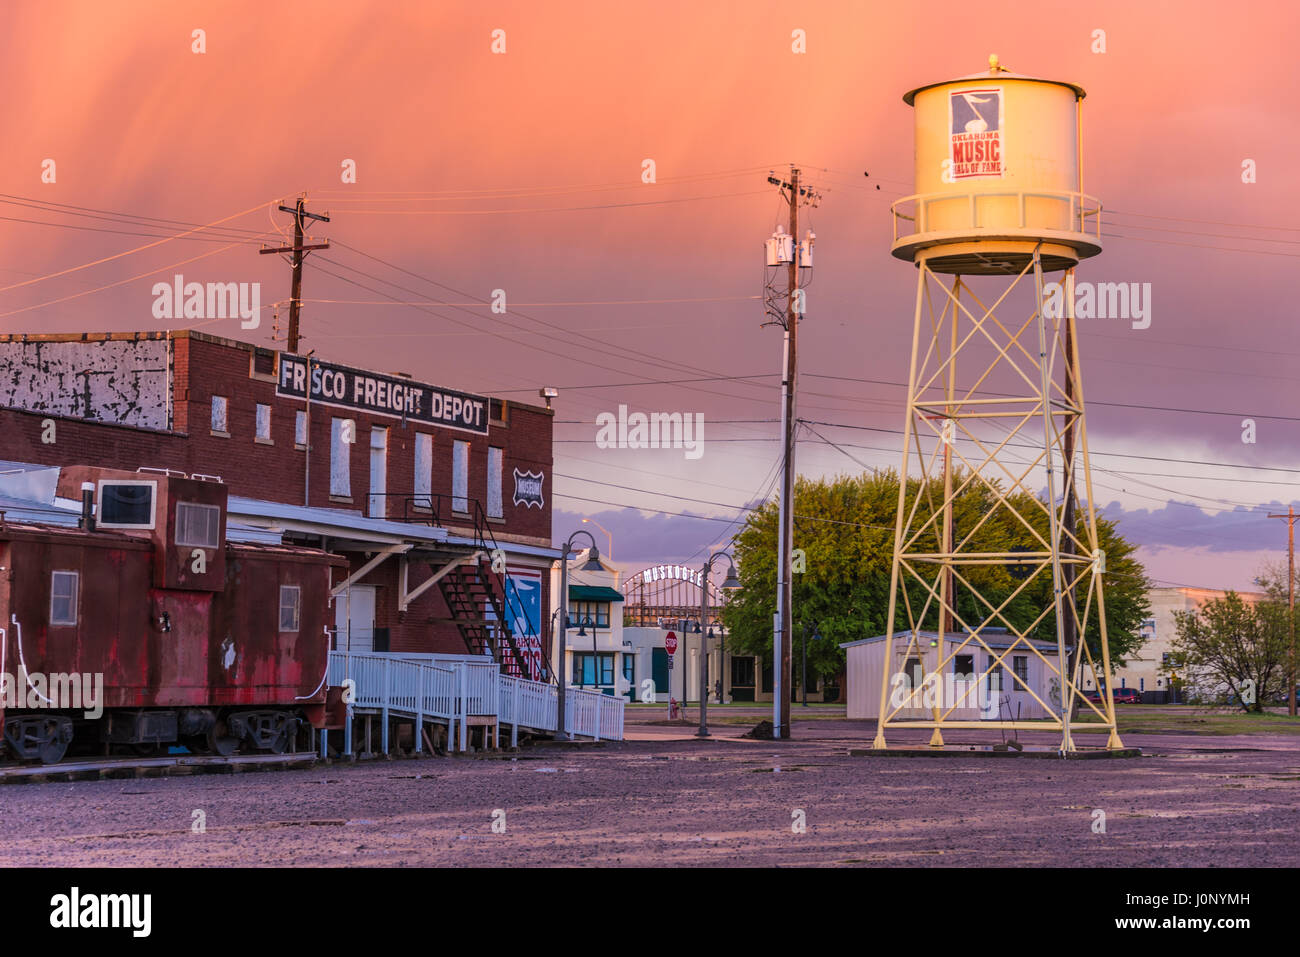 The Oklahoma Music Hall of Fame and iconic water tower at the Frisco Freight Depot under a colorful sunset sky in Muskogee, Oklahoma, USA. Stock Photo